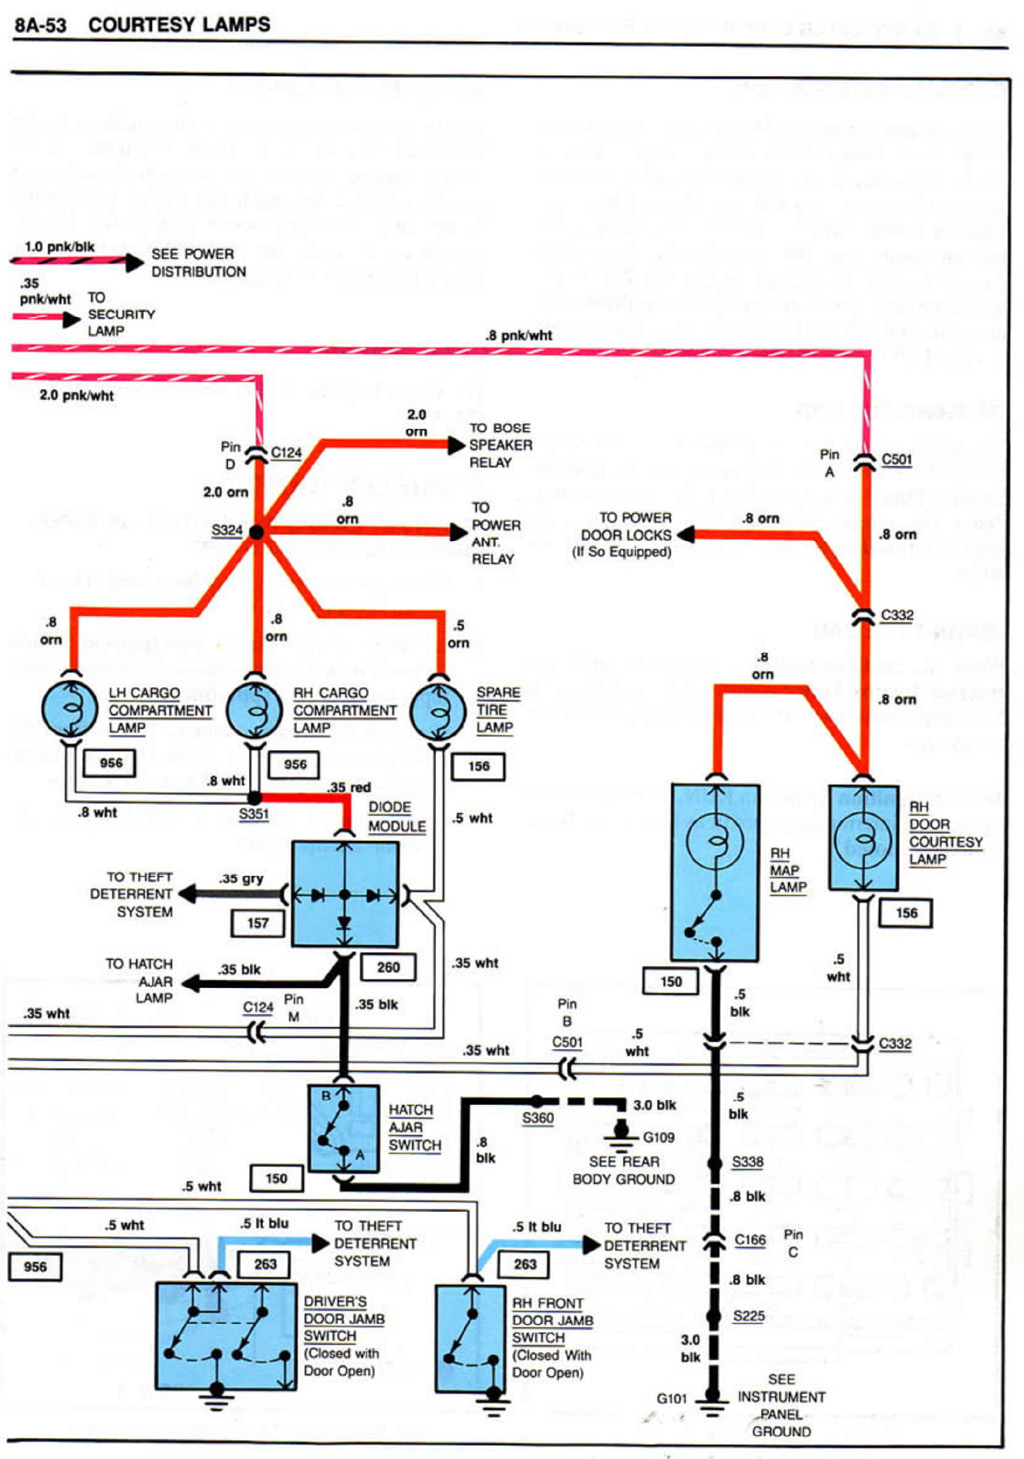 78 Corvette Alarm Wiring Diagram likewise Thread View additionally 68ef308d7ad7b2abaa01c3cfb3b77063 also 1967 1972 Chevrolet Truck Instrument moreover Jeepster Mando Wiring Diagram. on 1970 corvette alarm wiring diagram